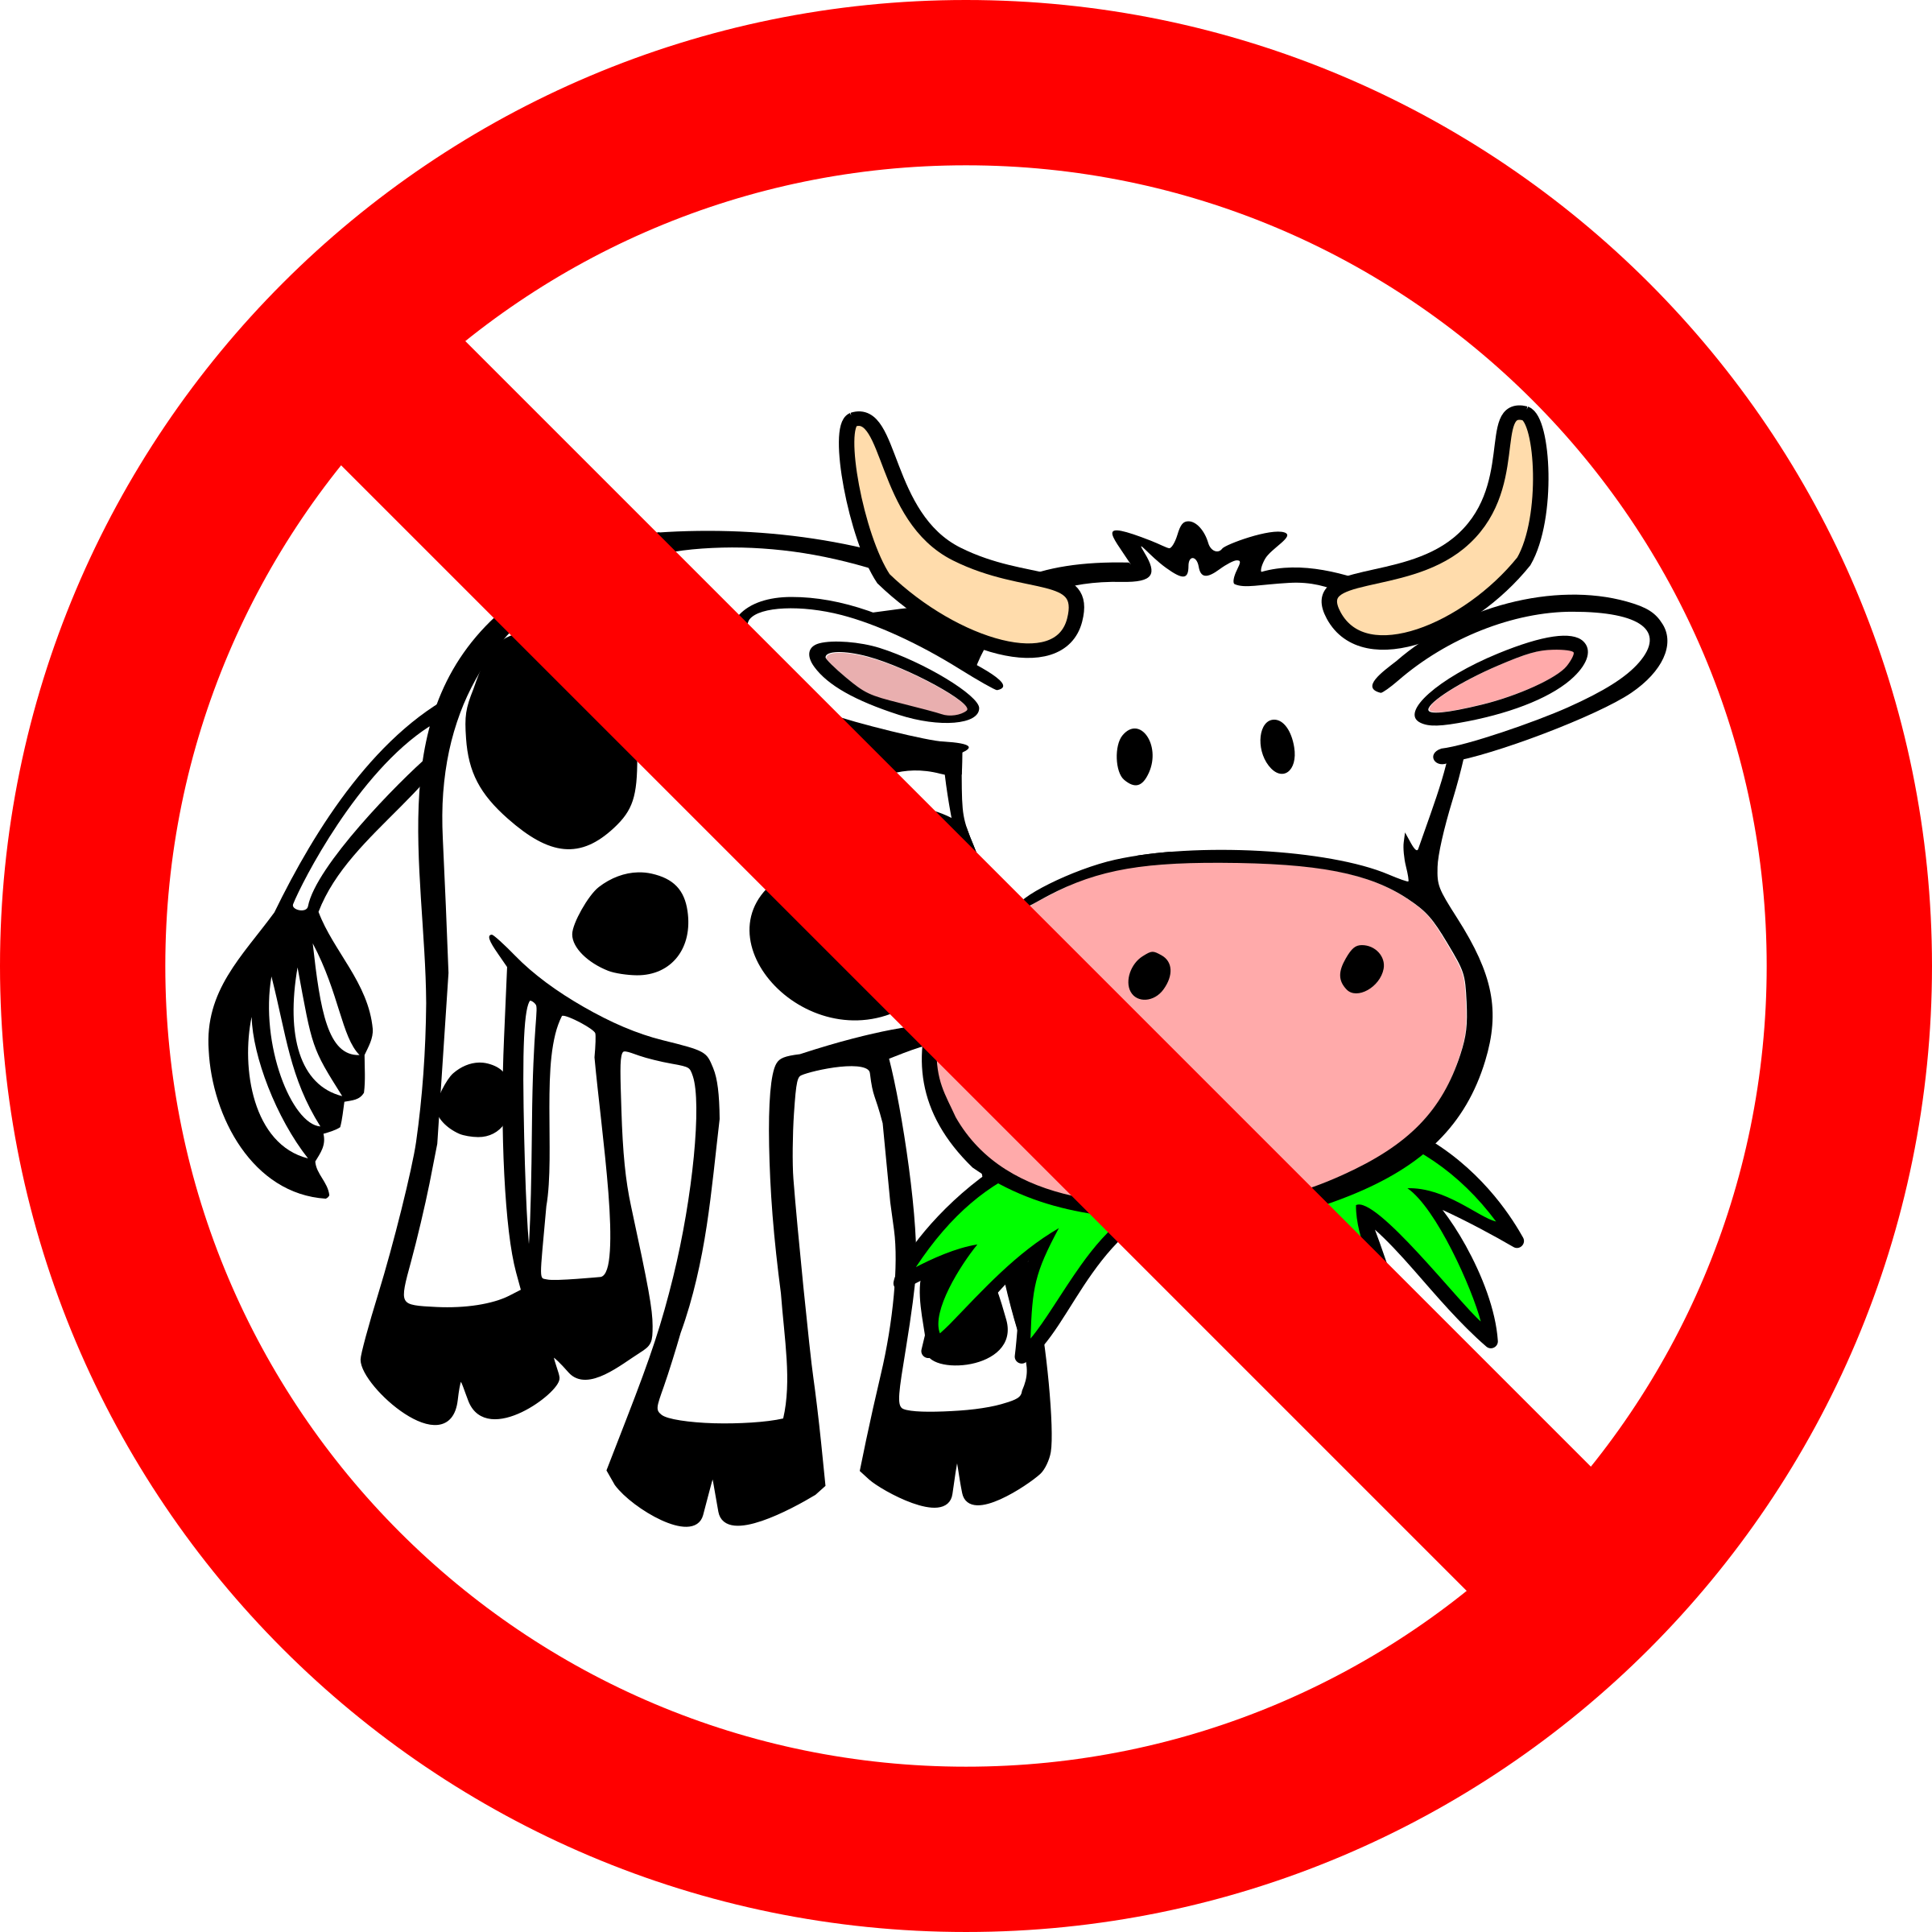 Bull icons png free. Banned .png jpg download